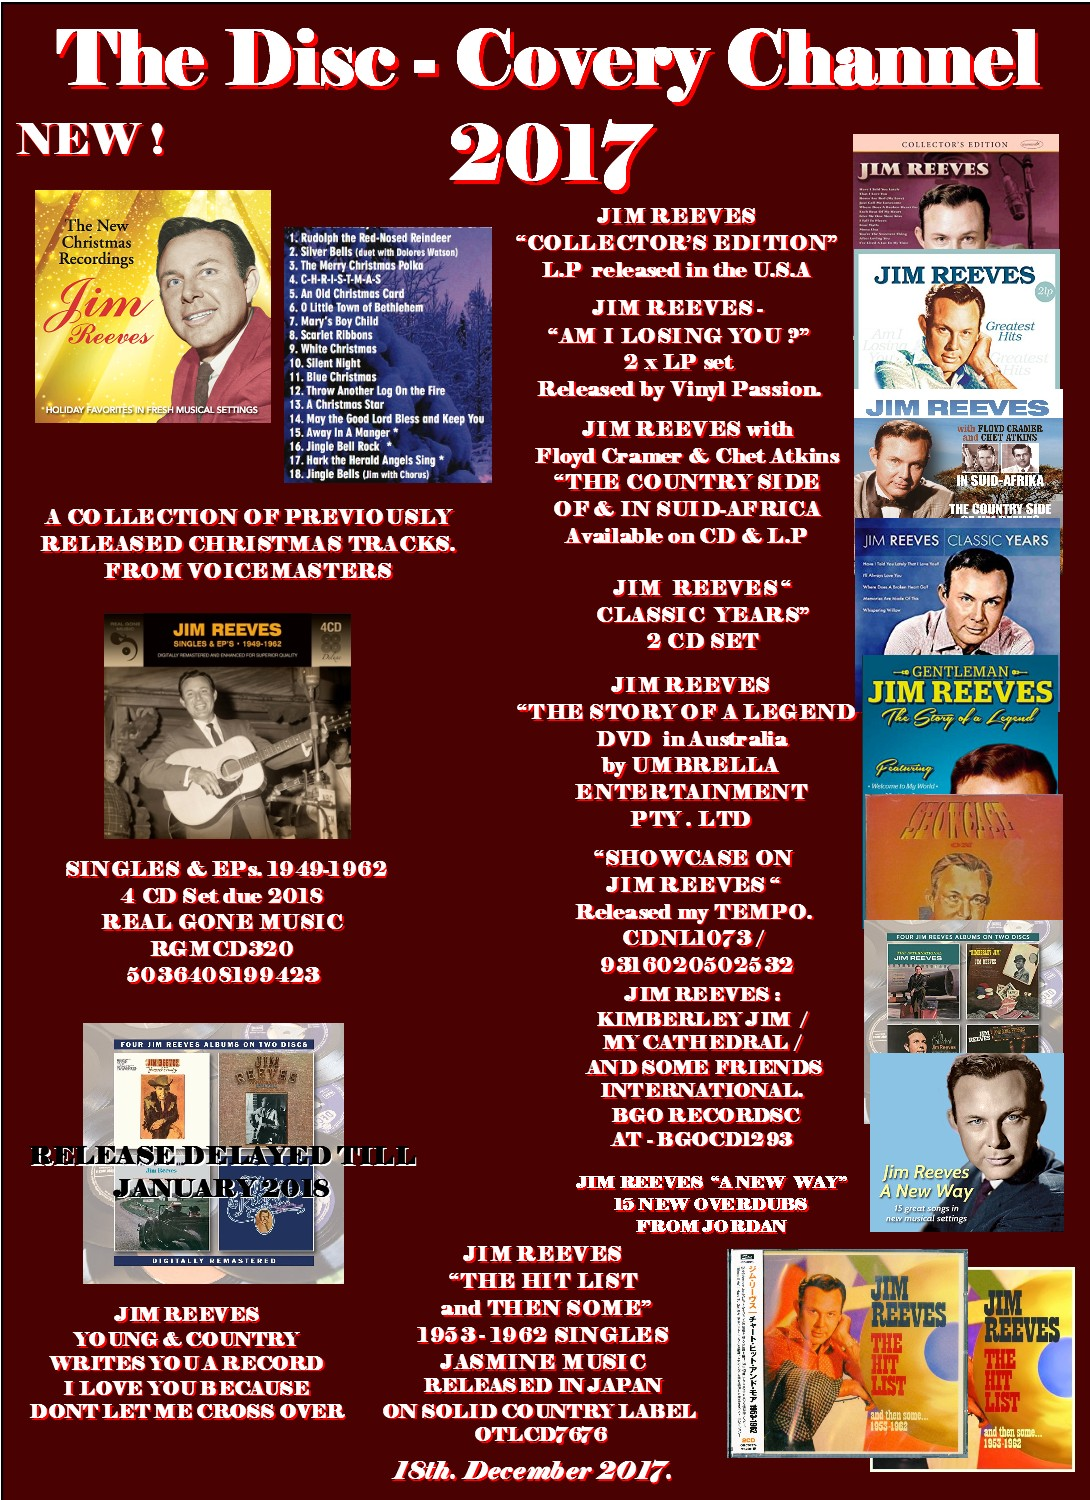 JIM REEVES FAN CLUB WEBSITE